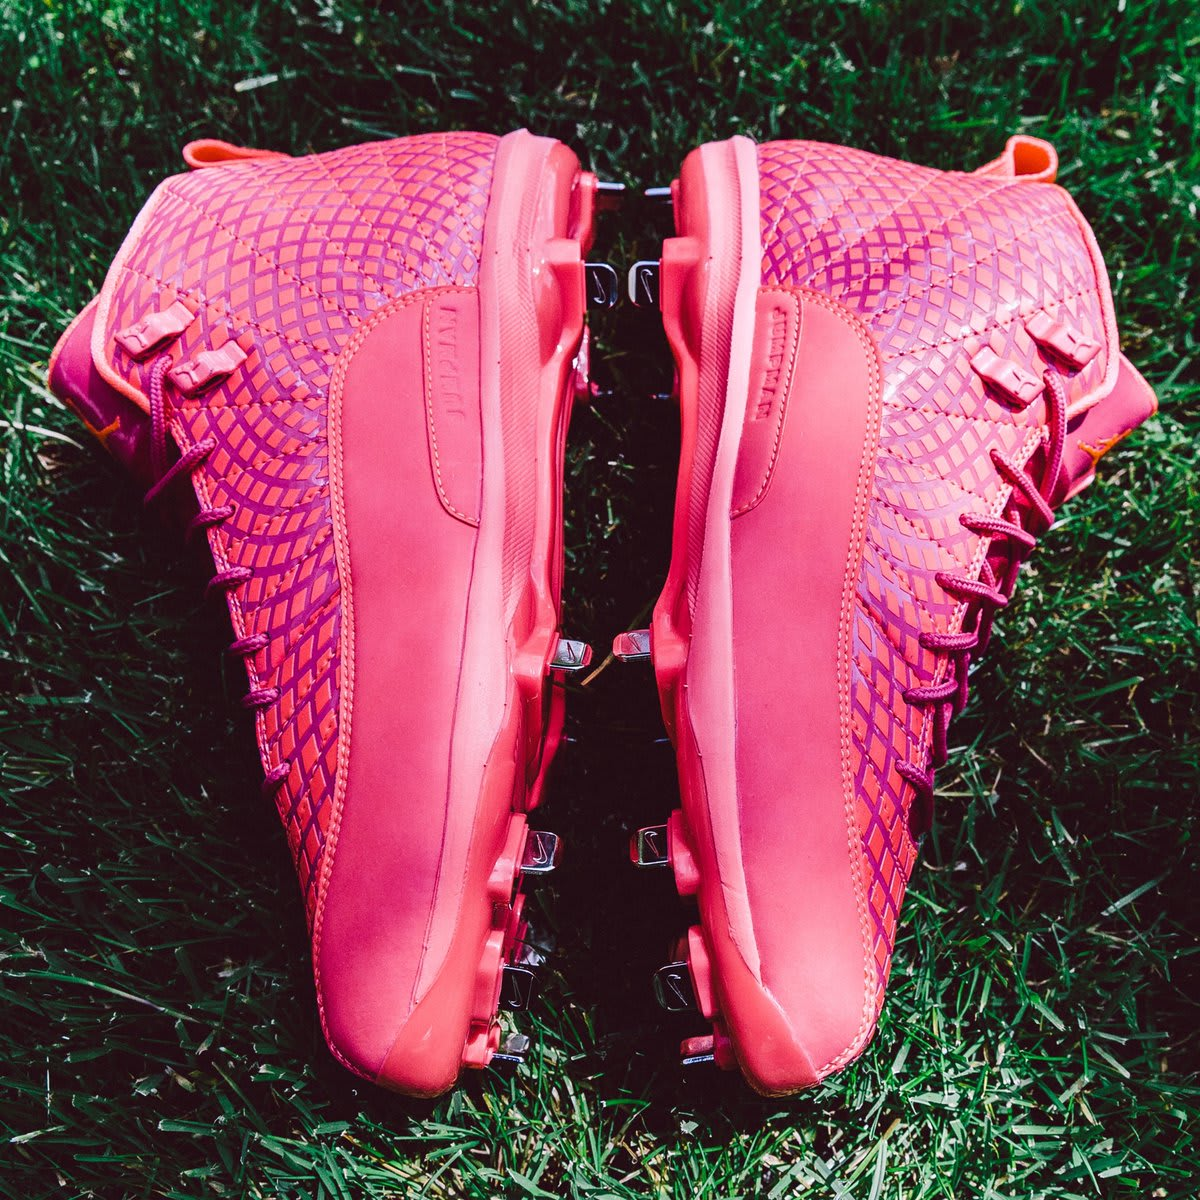 Air Jordan 12 Mother's Day Cleats Profile